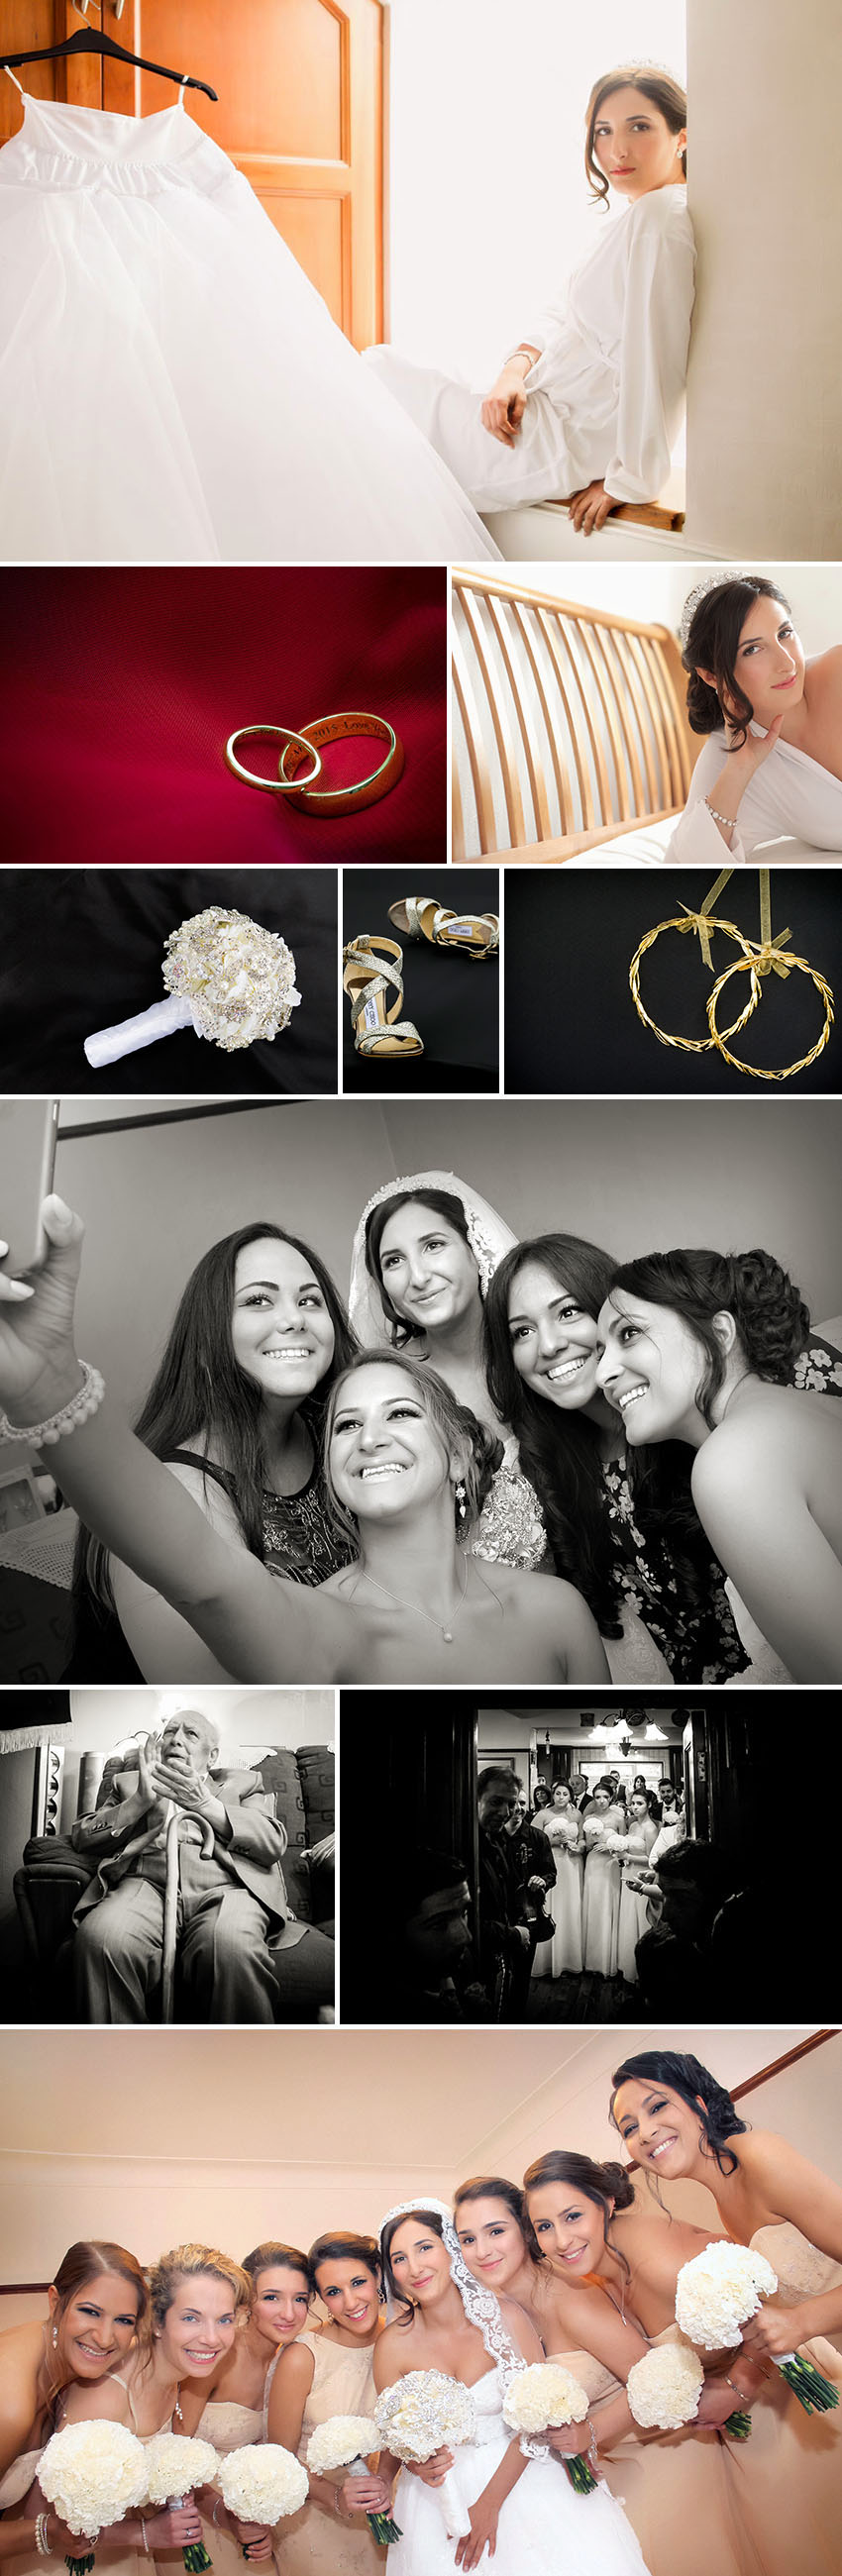 Wedding of Georgina and Evros in London 01